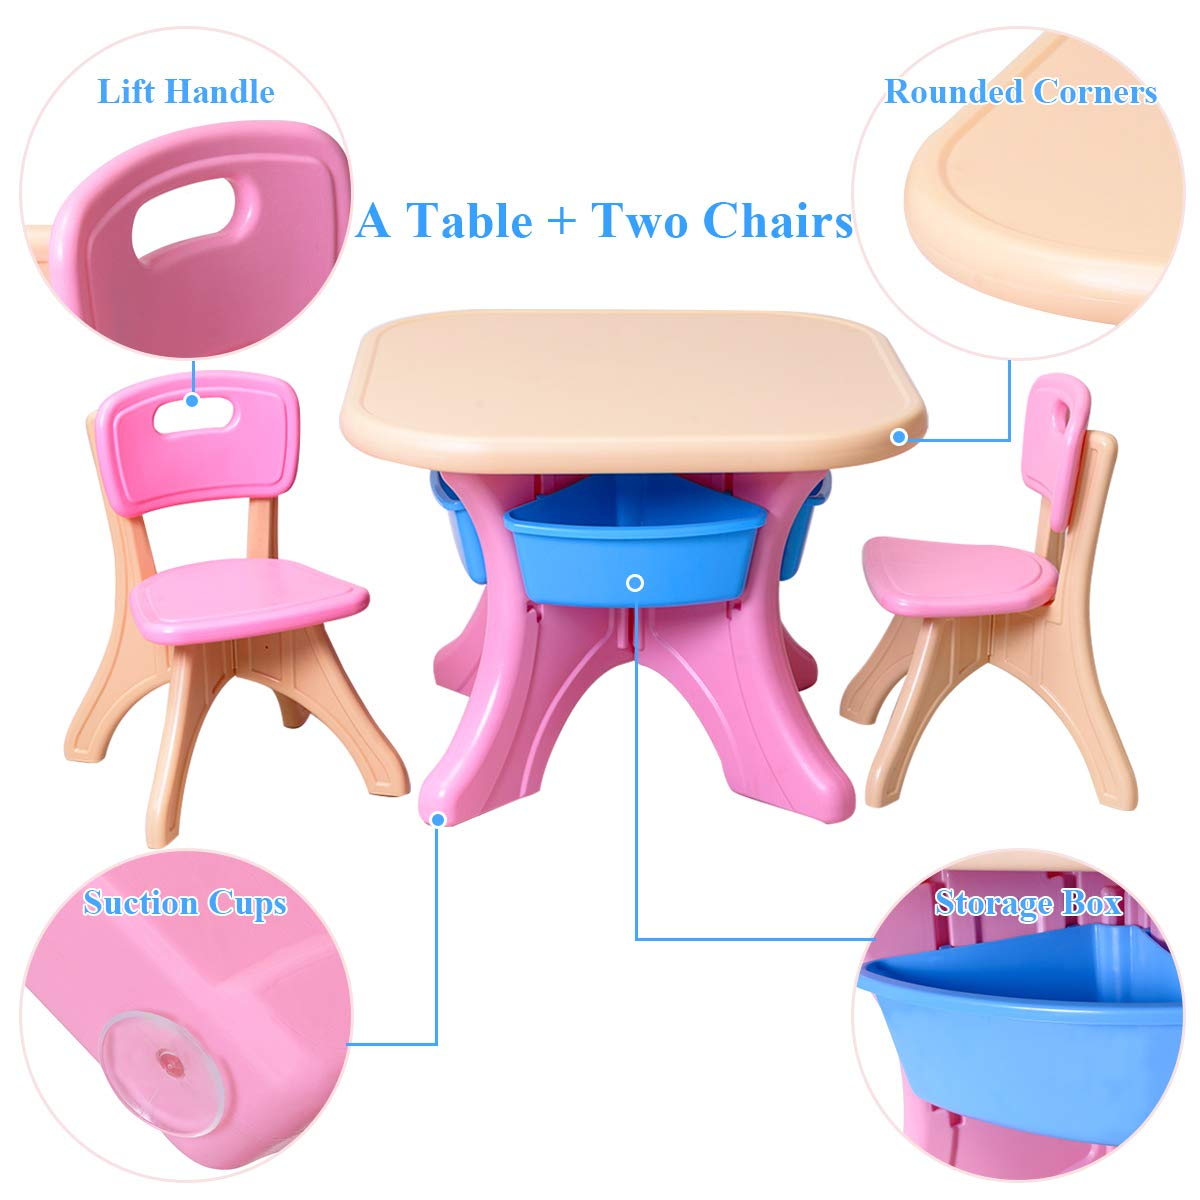 Awe Inspiring Costzon Kids Table And 2 Chair Set Children Activity Art Table Set W Detachable Storage Bins Strong Bearing Capacity Lightweight Kiddie Sized Dailytribune Chair Design For Home Dailytribuneorg